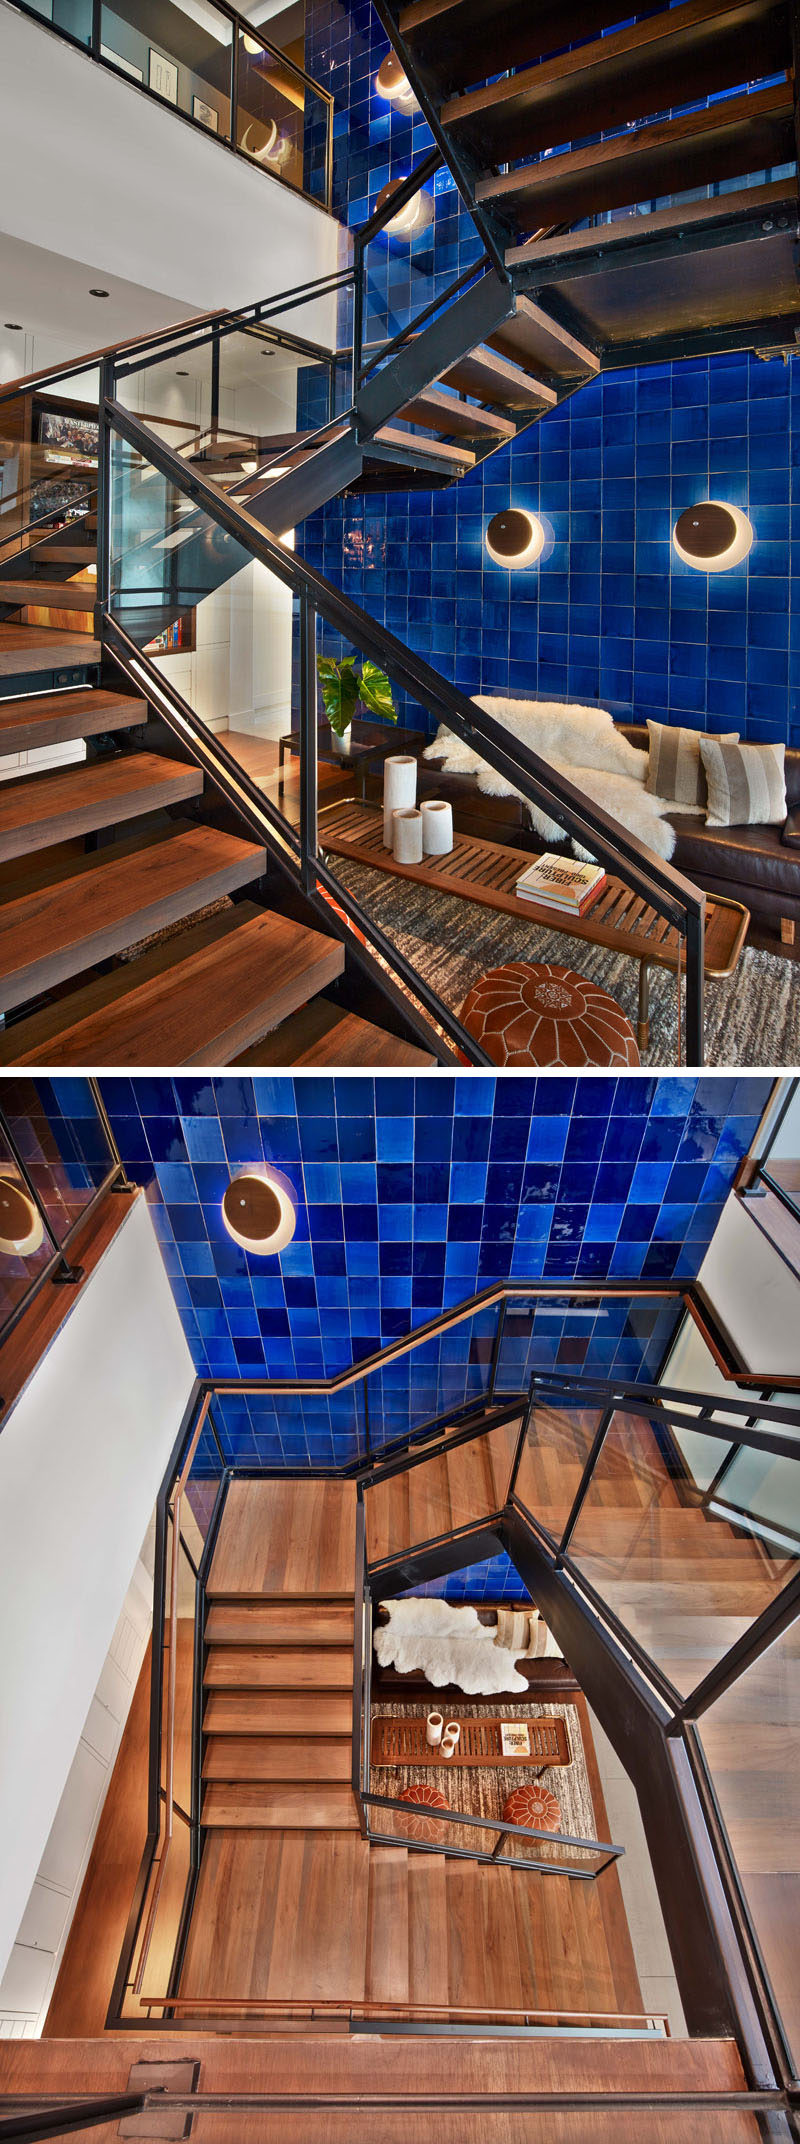 A large blue tiled wall runs alongside the wood and steel stairs, that lead to other floors of this hotel.